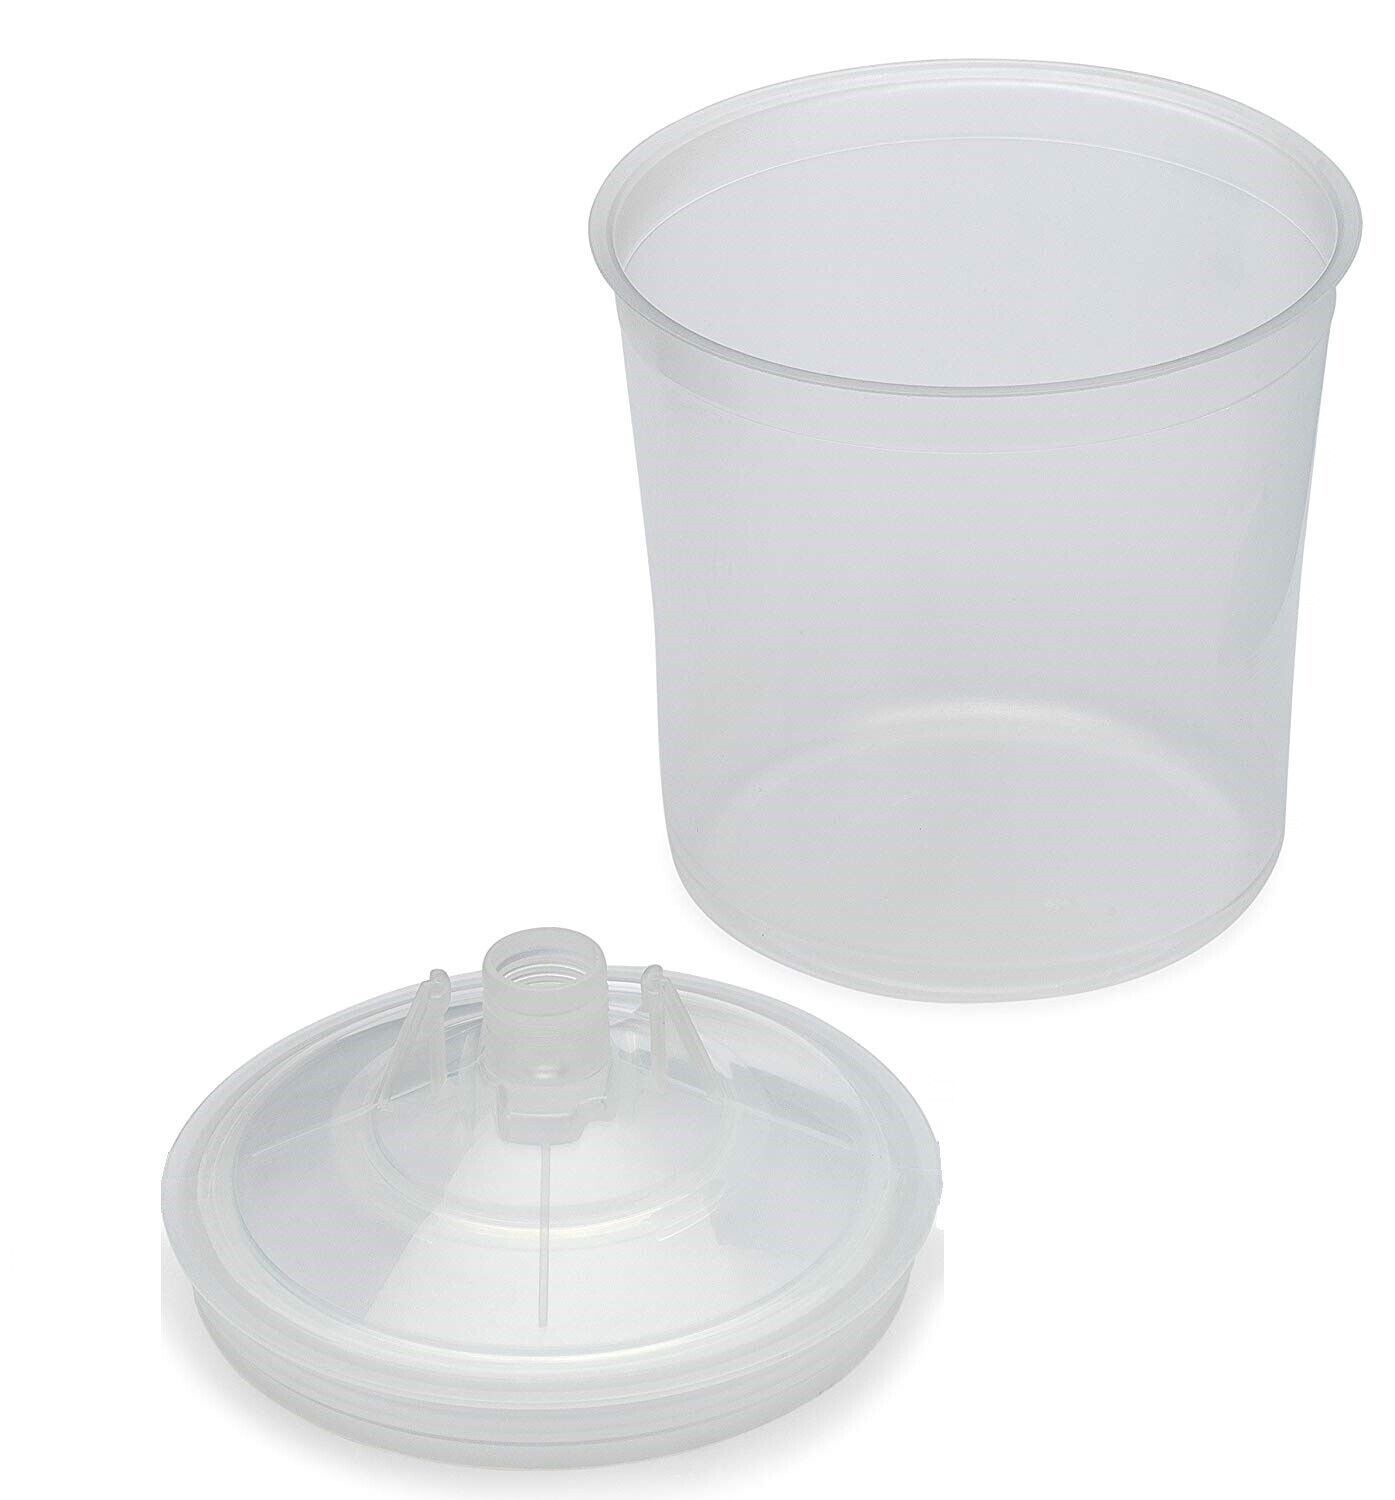 Disposable Paint Cup Set 50 Lids & 50 Liners W/ Hard Cup - Compare 3M 16000 PPS